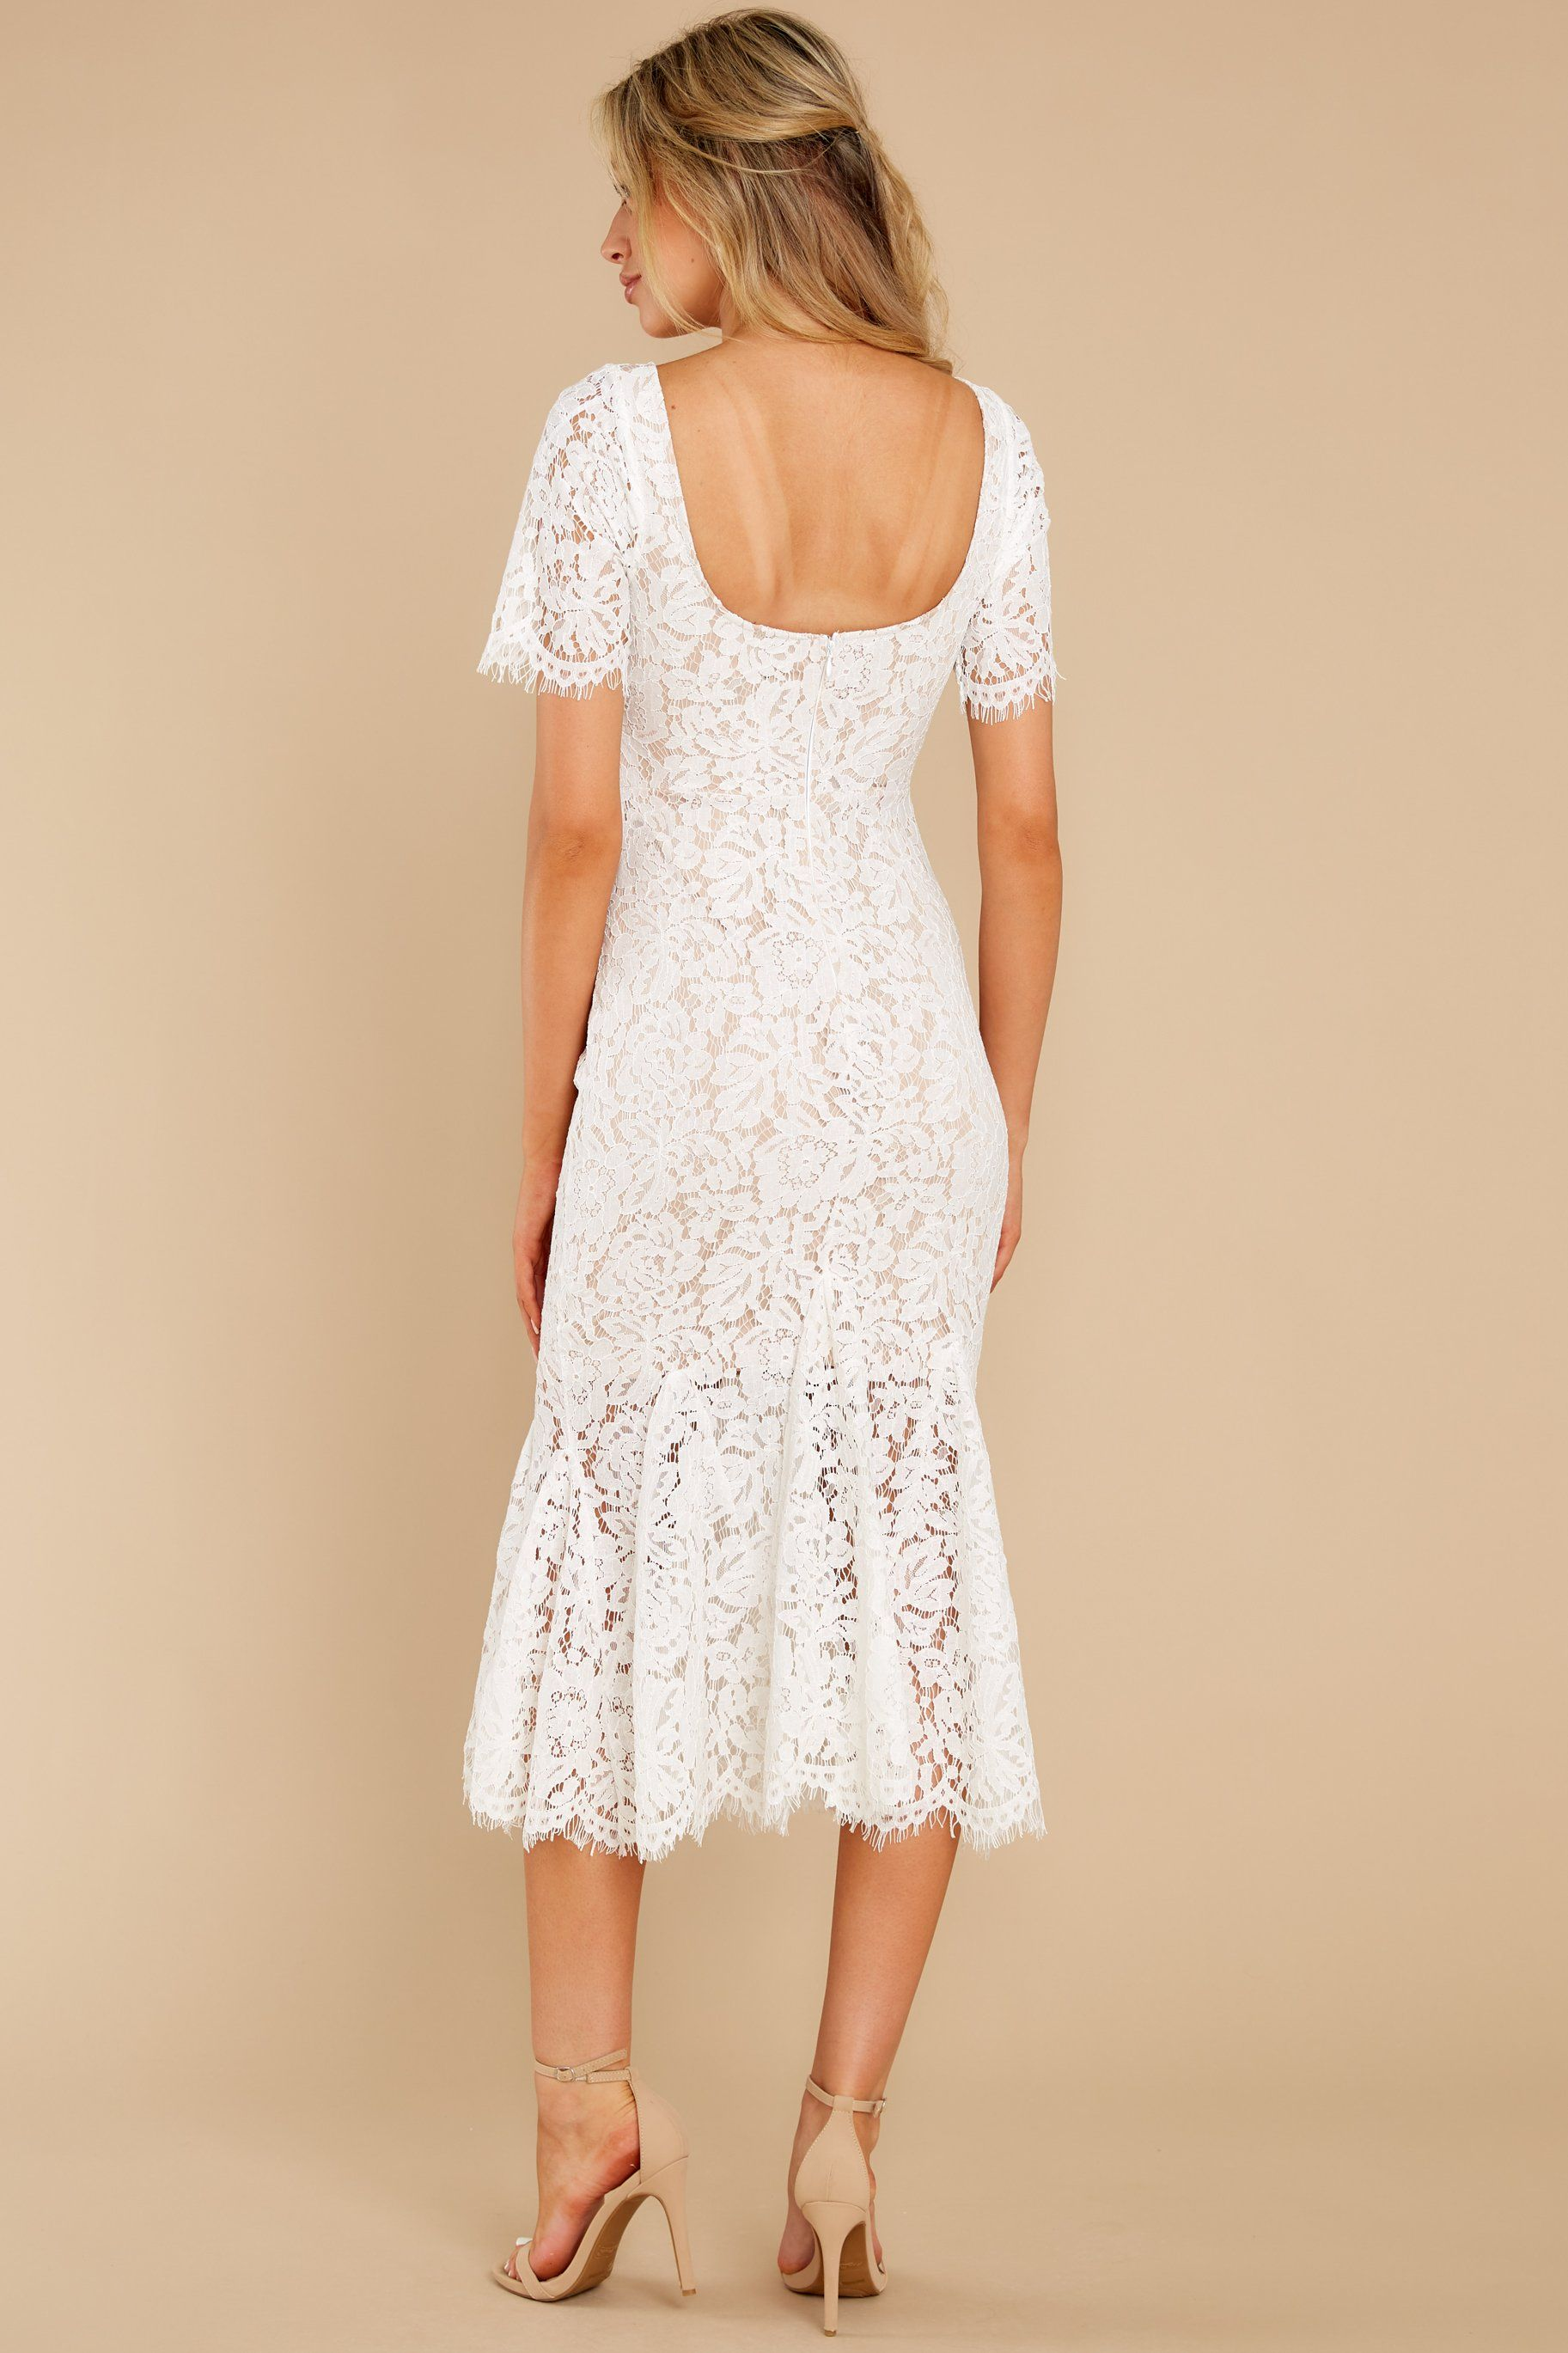 I Can T Resist White Lace Midi Dress In 2021 White Lace Midi Dress Dresses White Lace Bodycon Dress [ 2738 x 1825 Pixel ]